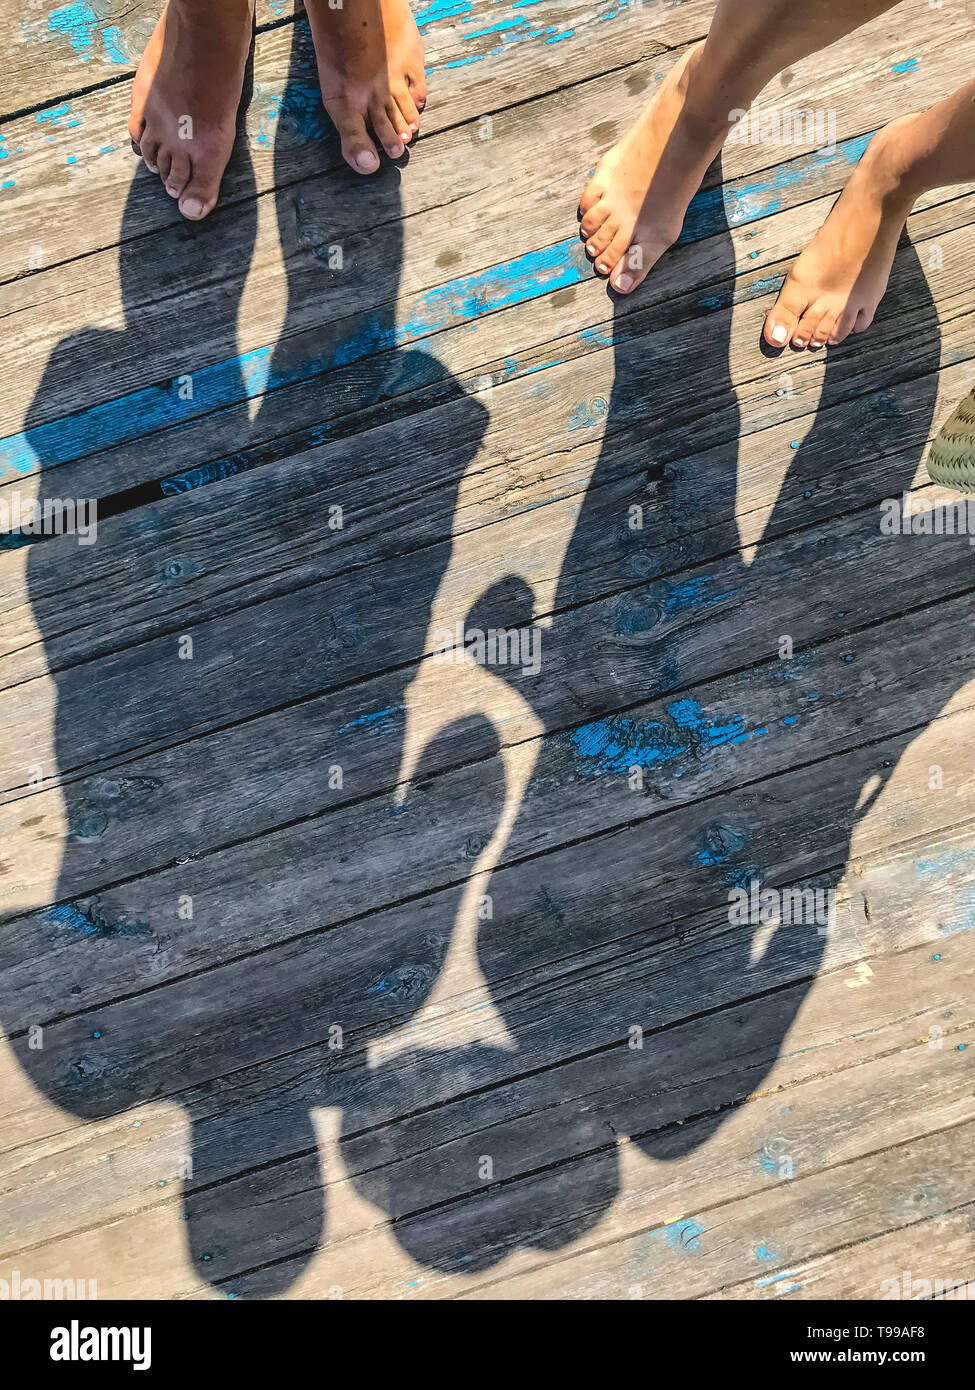 Top view, photo of bare feet and a pair of shadows on a wooden old floor. Photos on vacation, beach, summer. - Stock Image